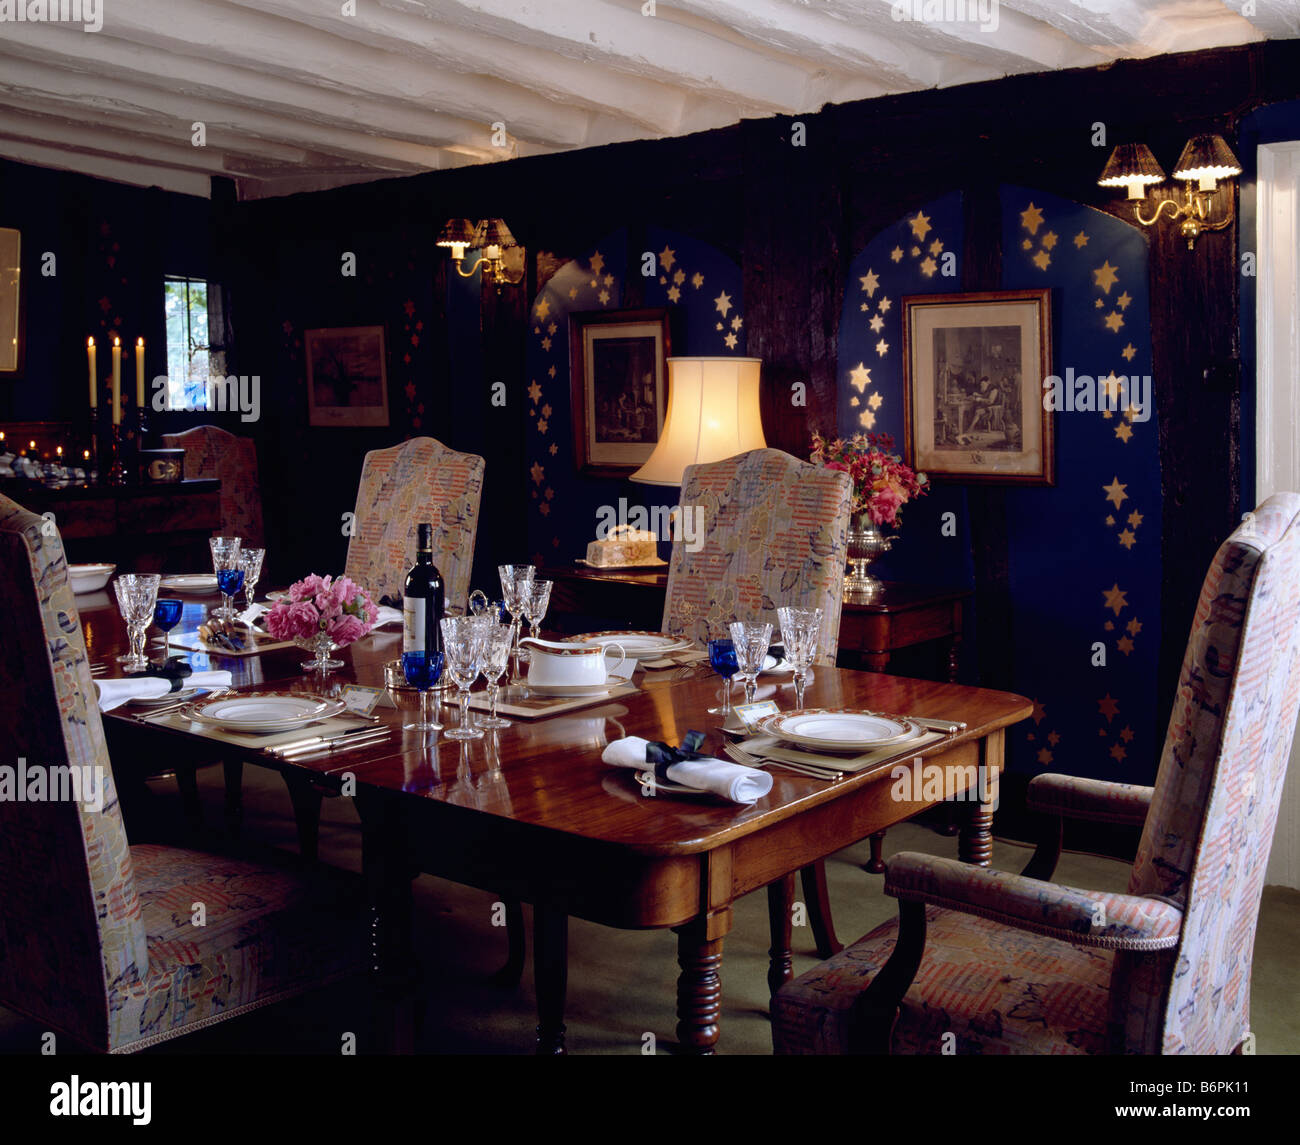 country dining room lighting. Table Set For Dinner In Country Dining Room With Lighted Lamps And Gold Stencilling On Blue Wall Lighting R